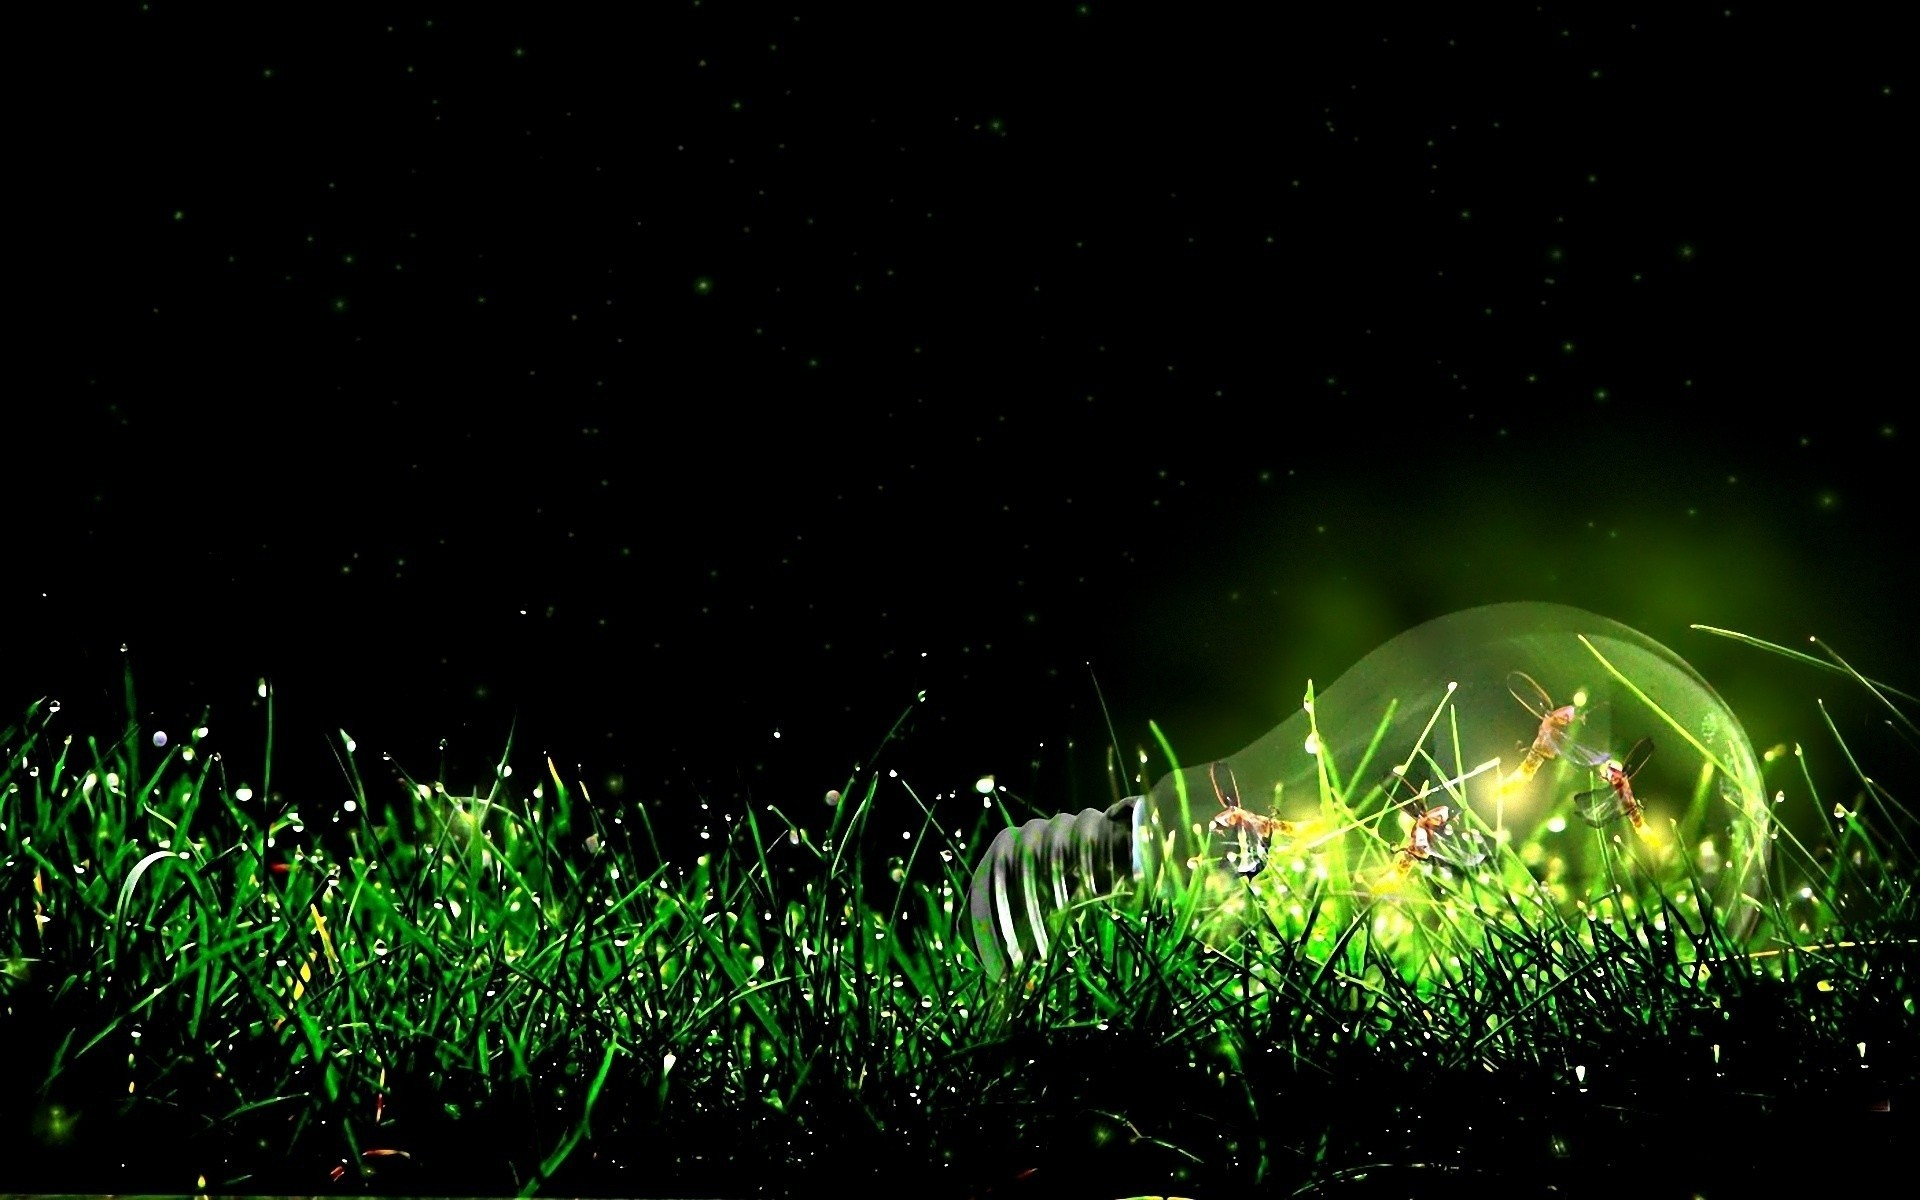 1920x1200 Insects Bulb Light Grass